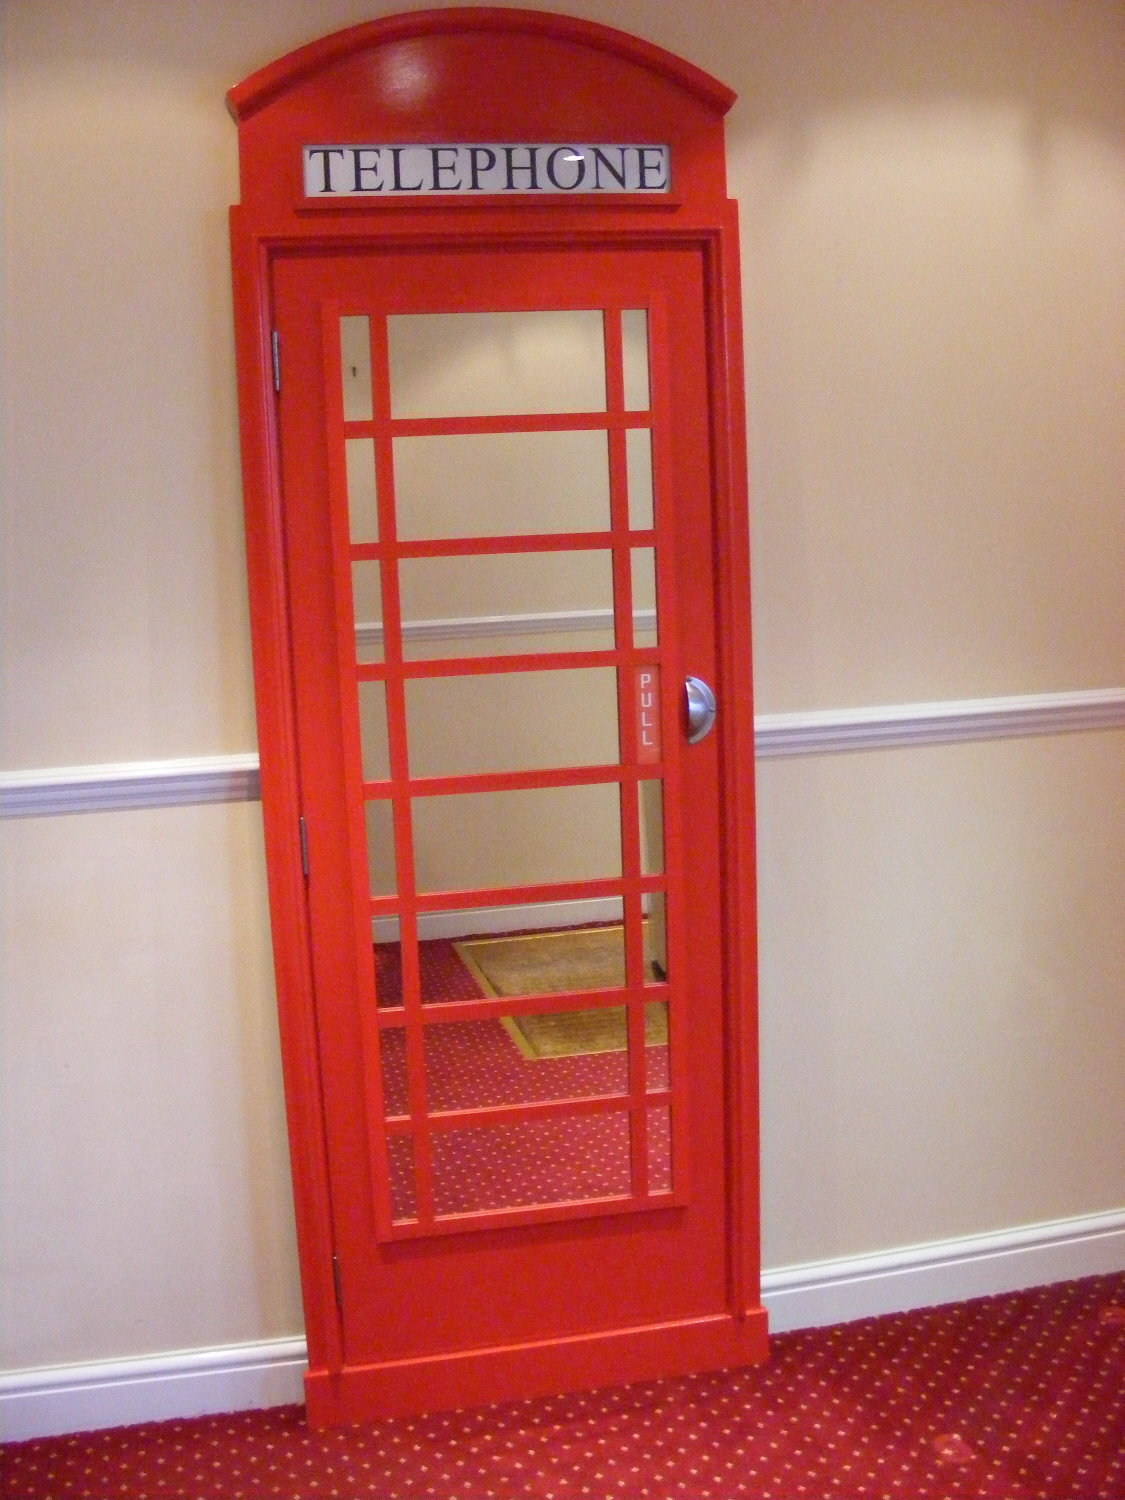 Millicent James Our First Order For Our Red Telephone Box